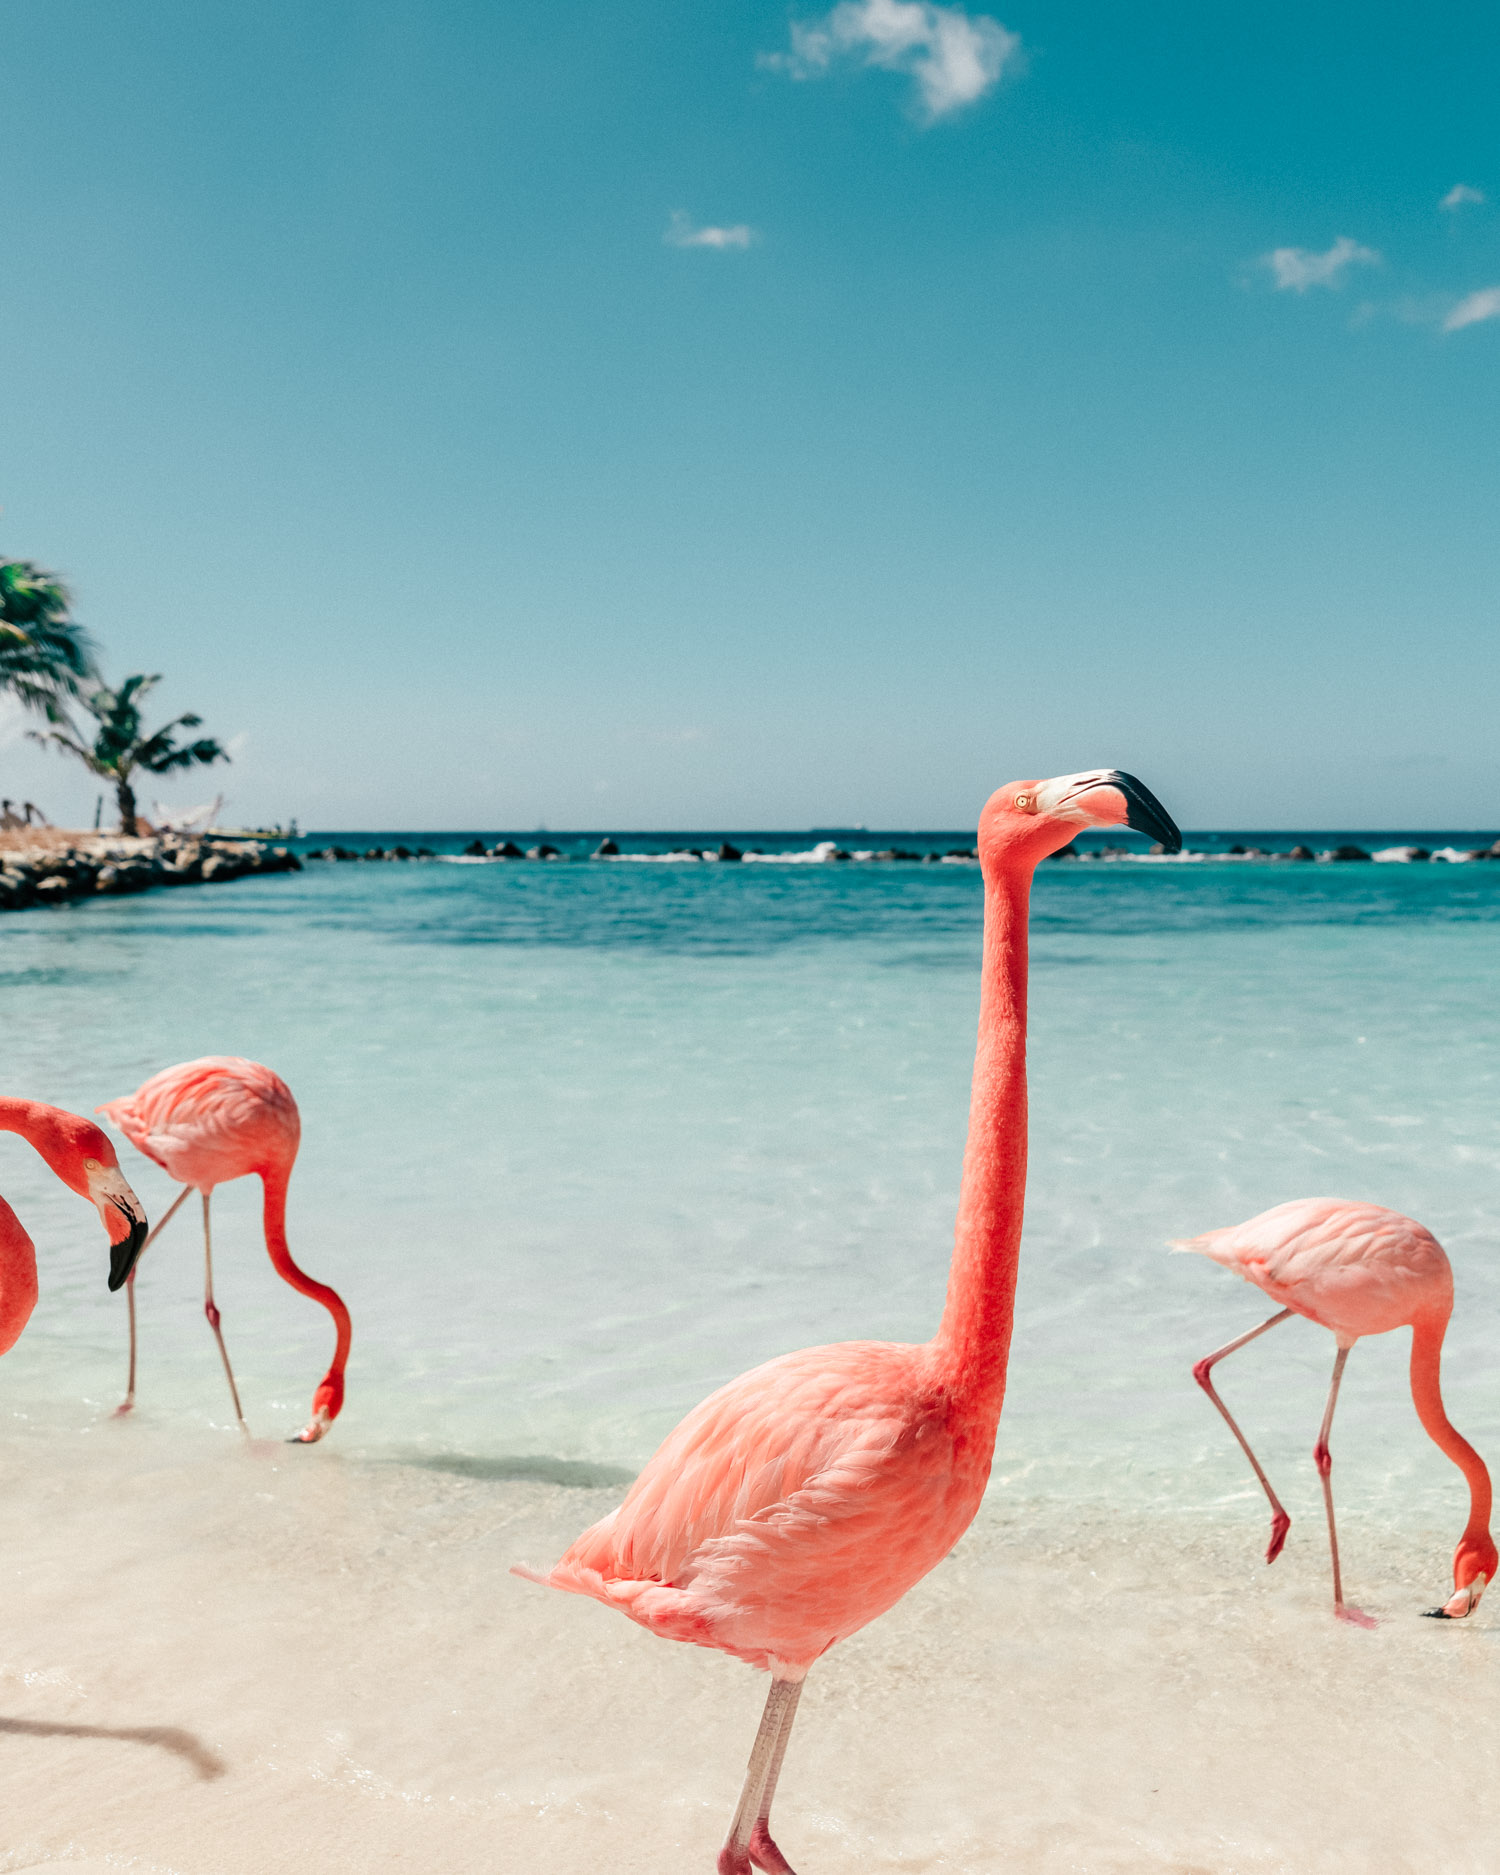 Flamingo Beach, Aruba, Renaissance Private Island